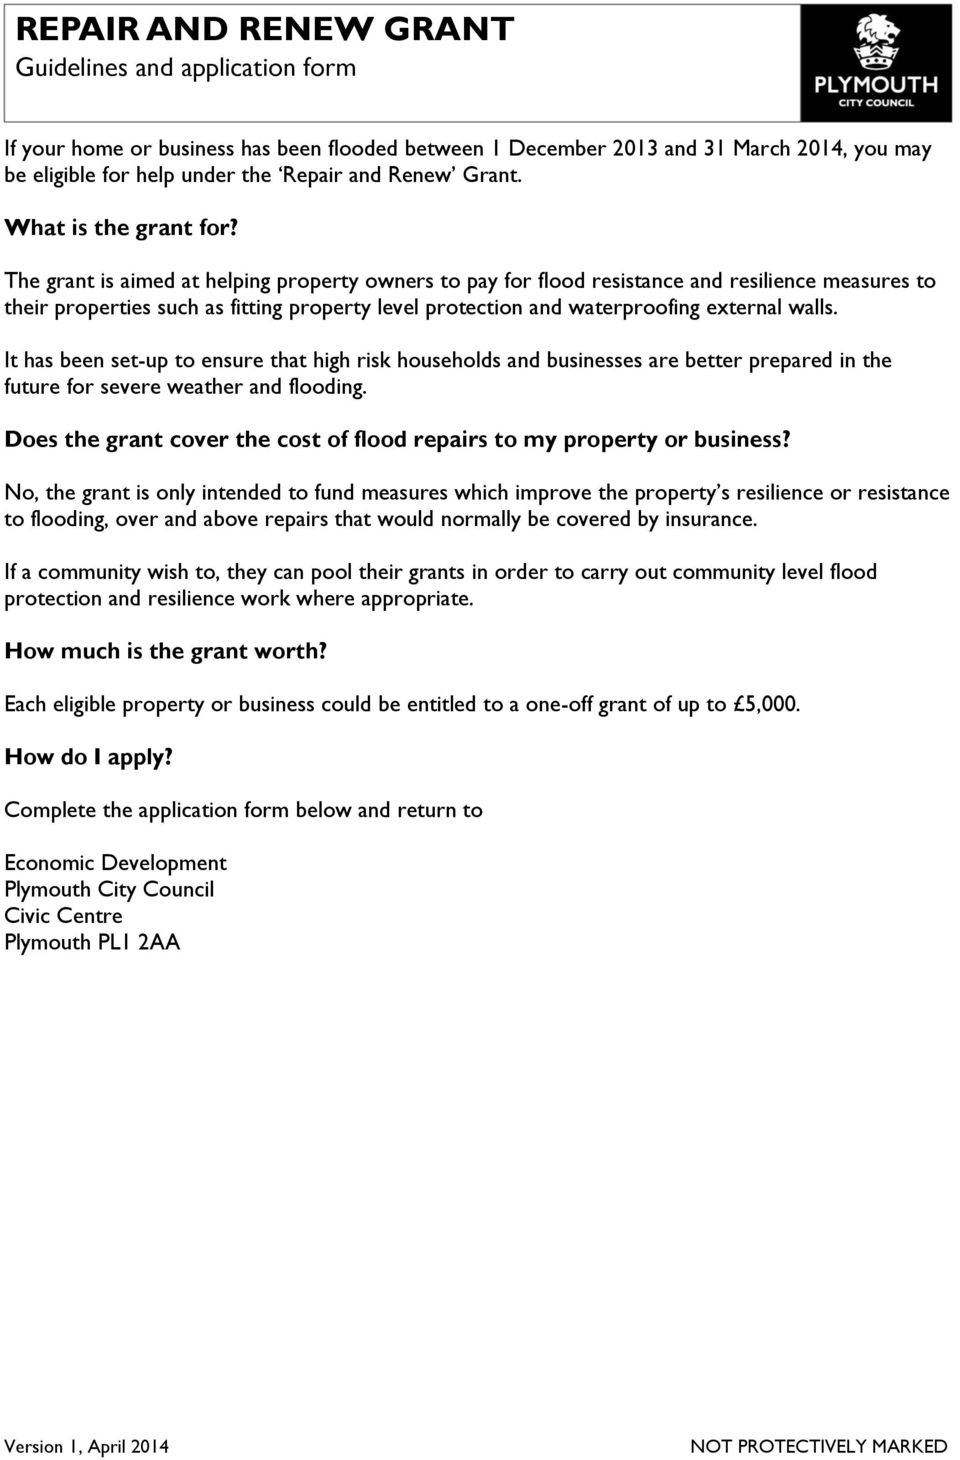 The grant is aimed at helping property owners to pay for flood resistance and resilience measures to their properties such as fitting property level protection and waterproofing external walls.